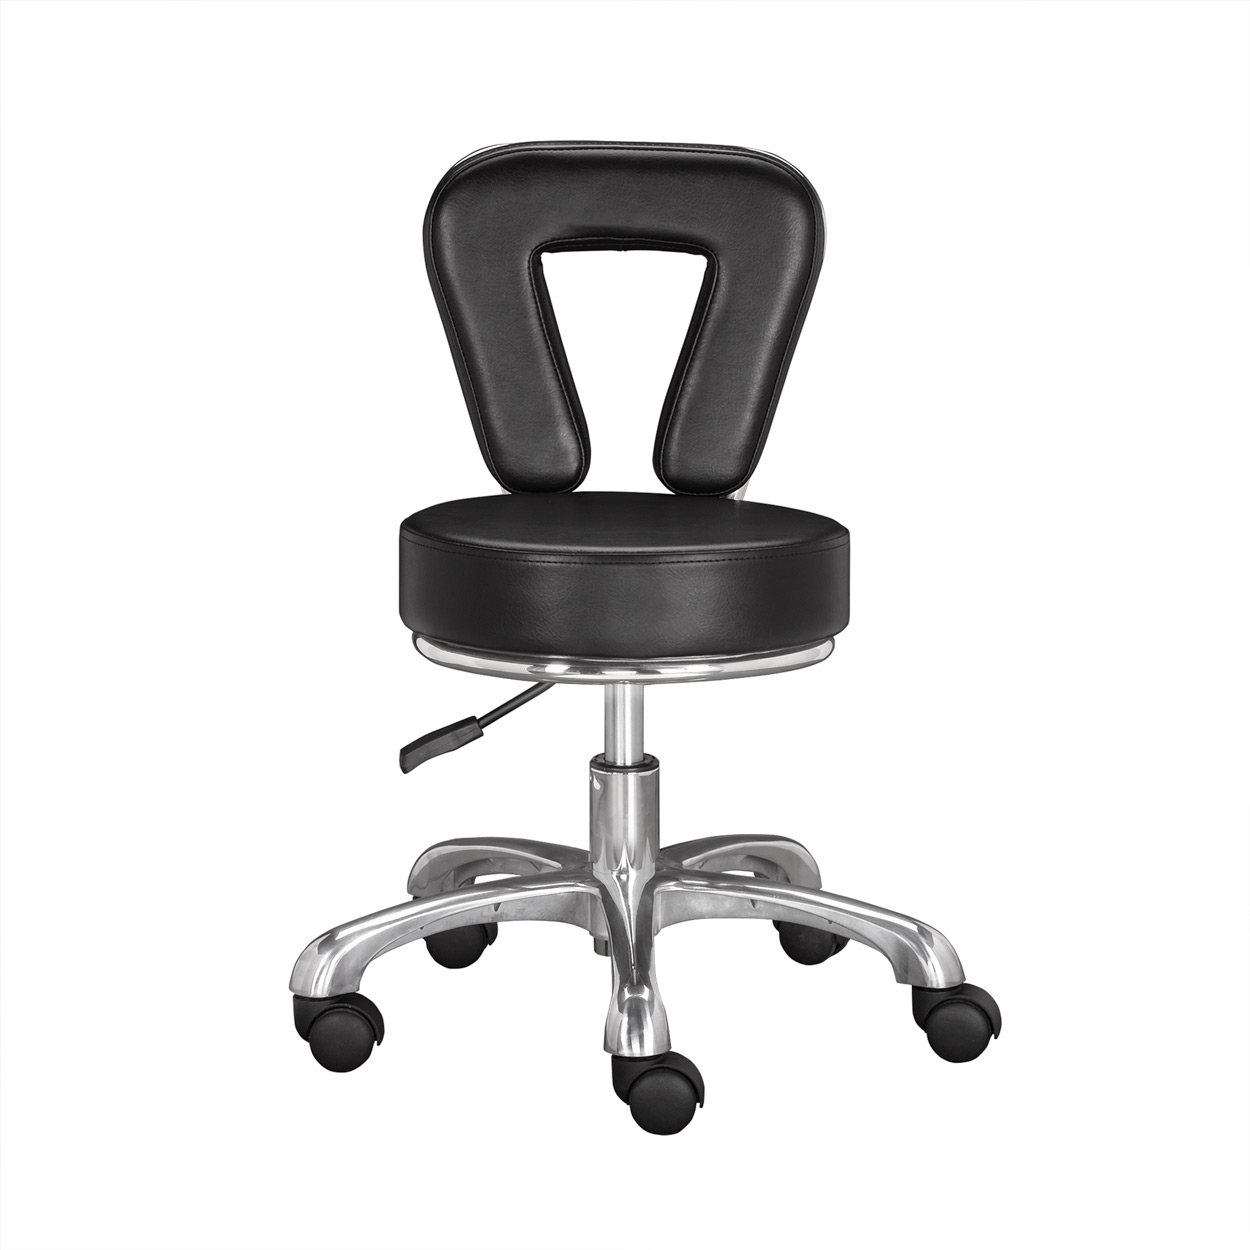 Black Nile Pedicure Technician Stool alternative product image 2